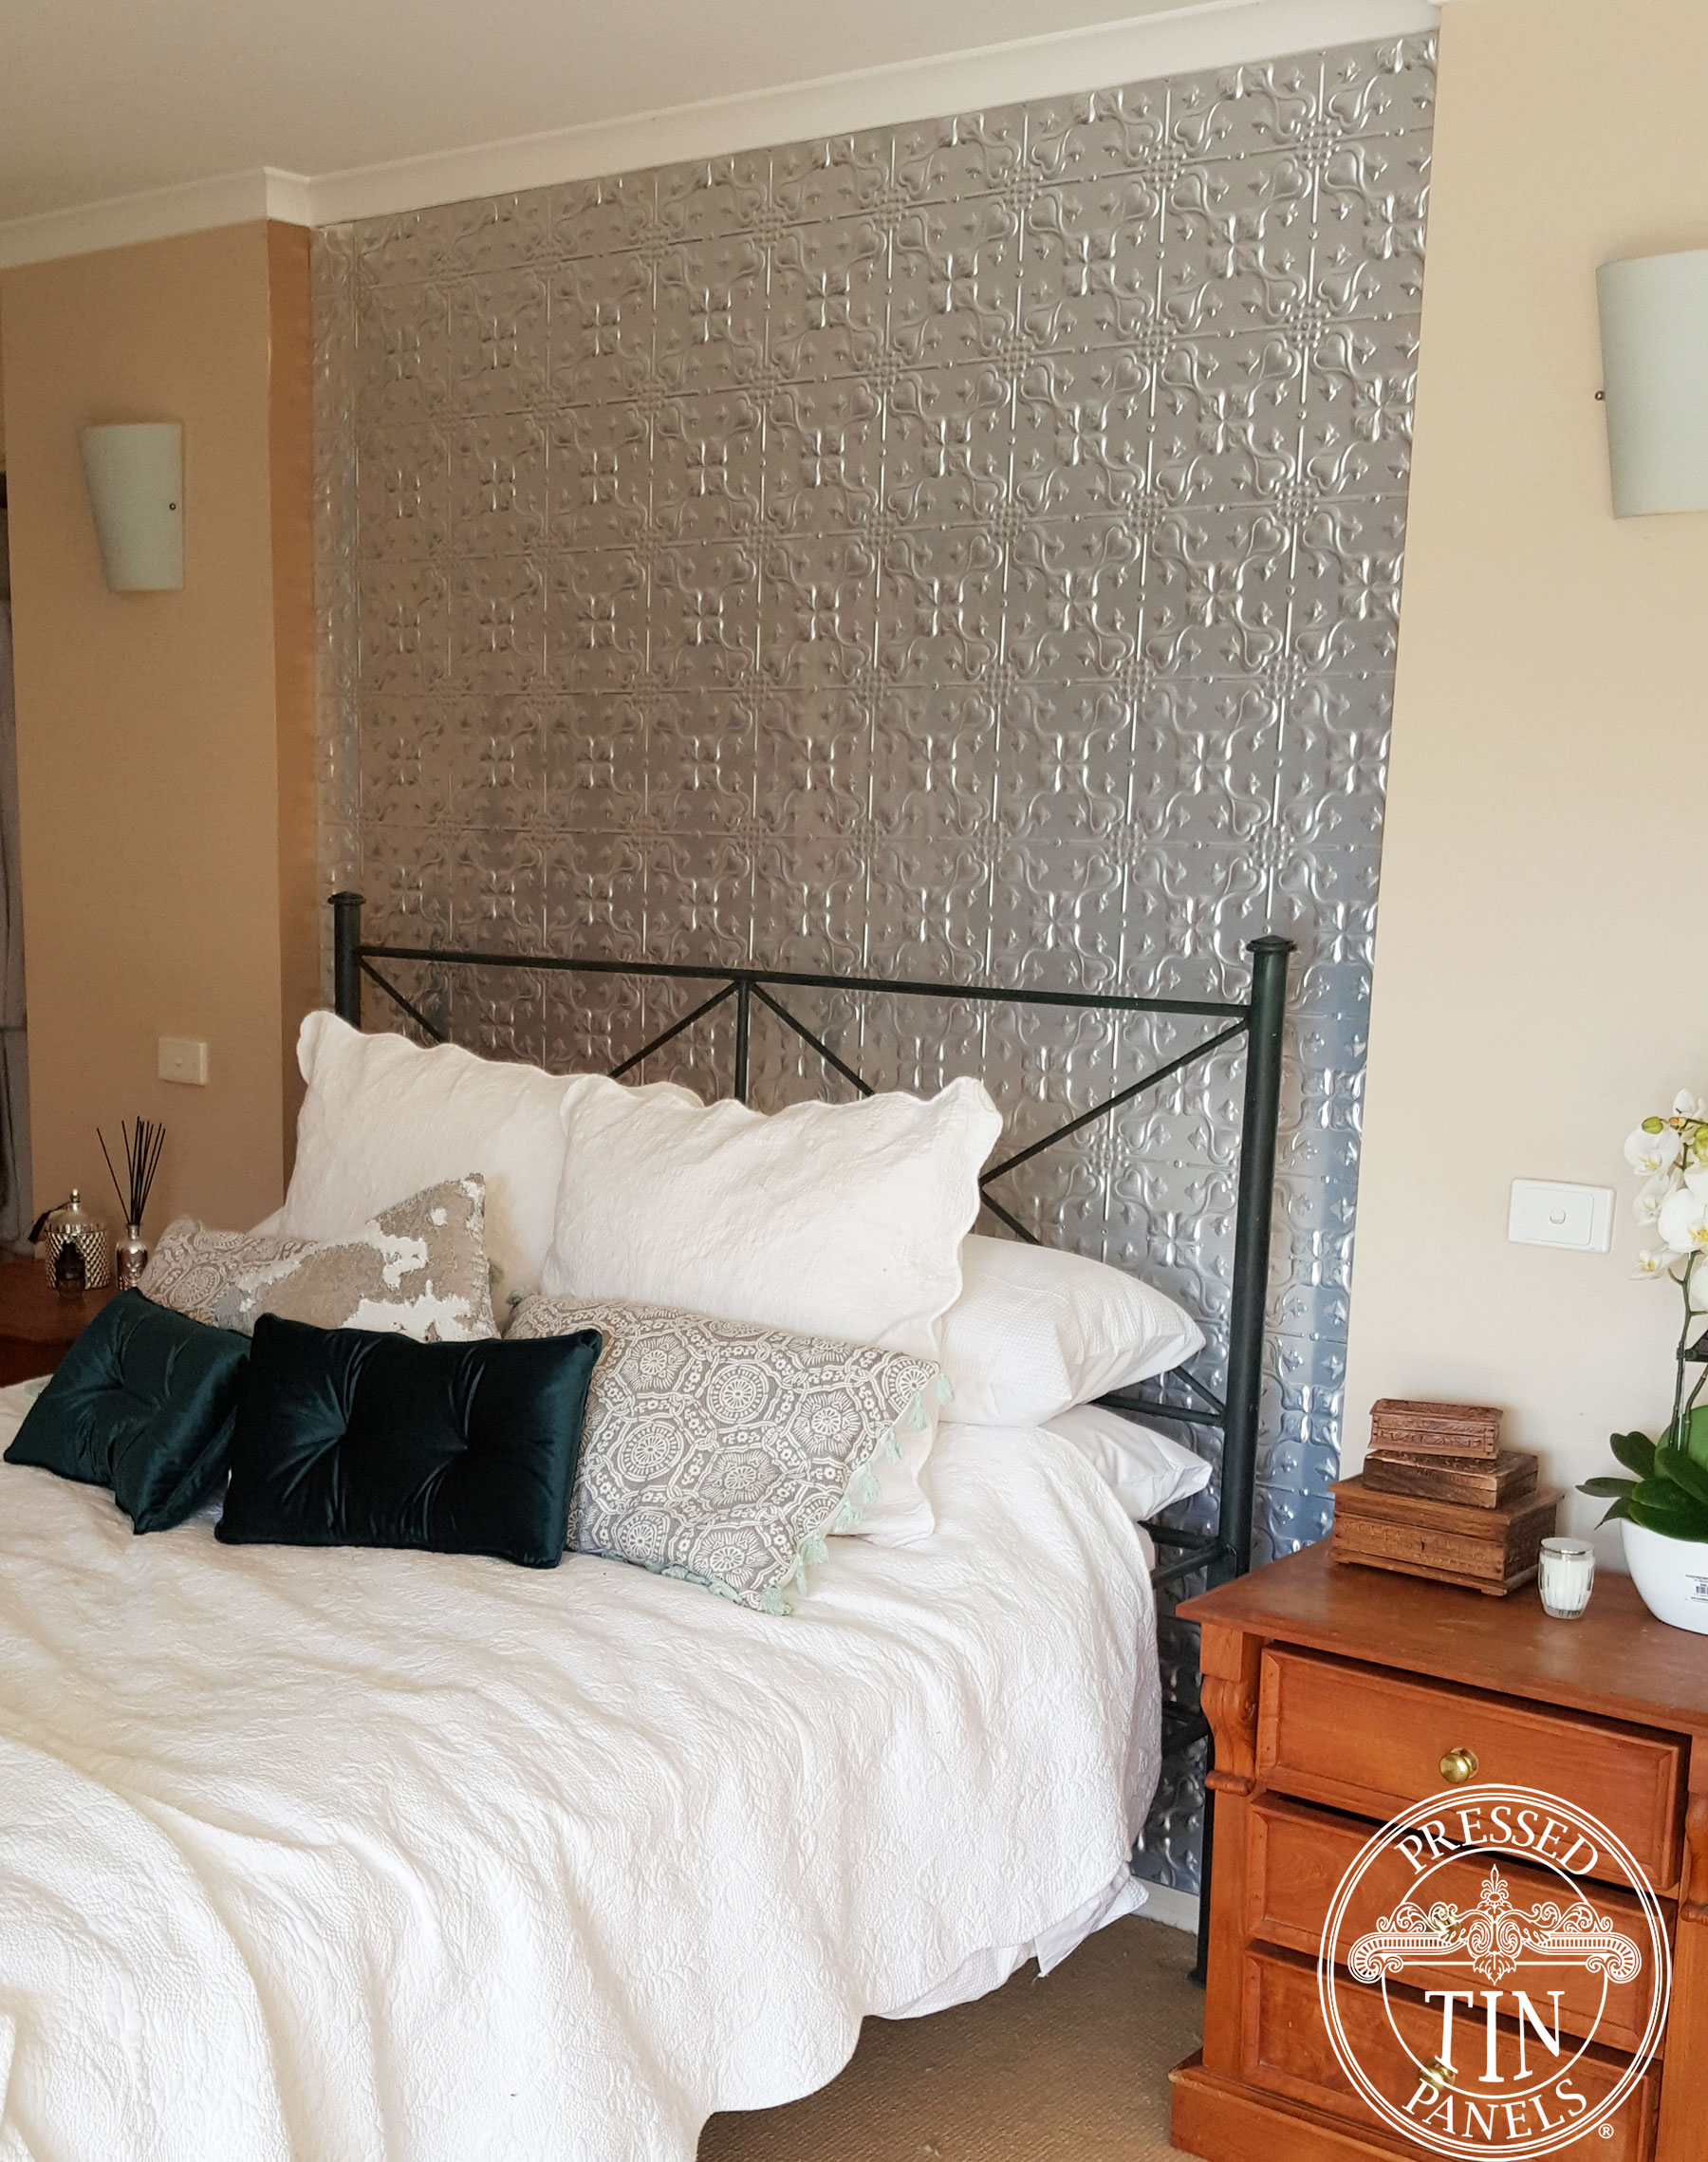 Pressed Tin Panels Lizards pattern installed as a bedroom feature wall